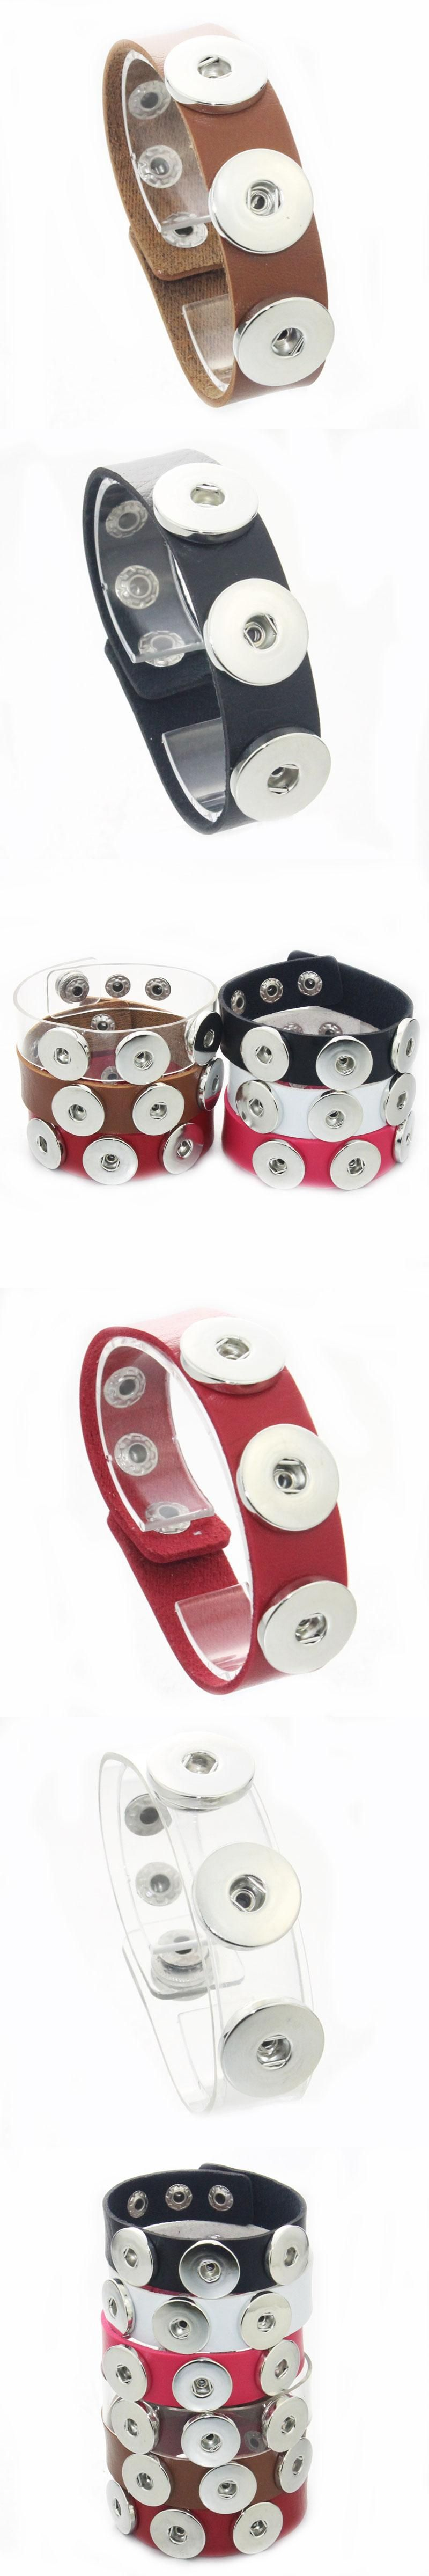 Cm leather bracelet snap button snap bracelet for women wrap charm